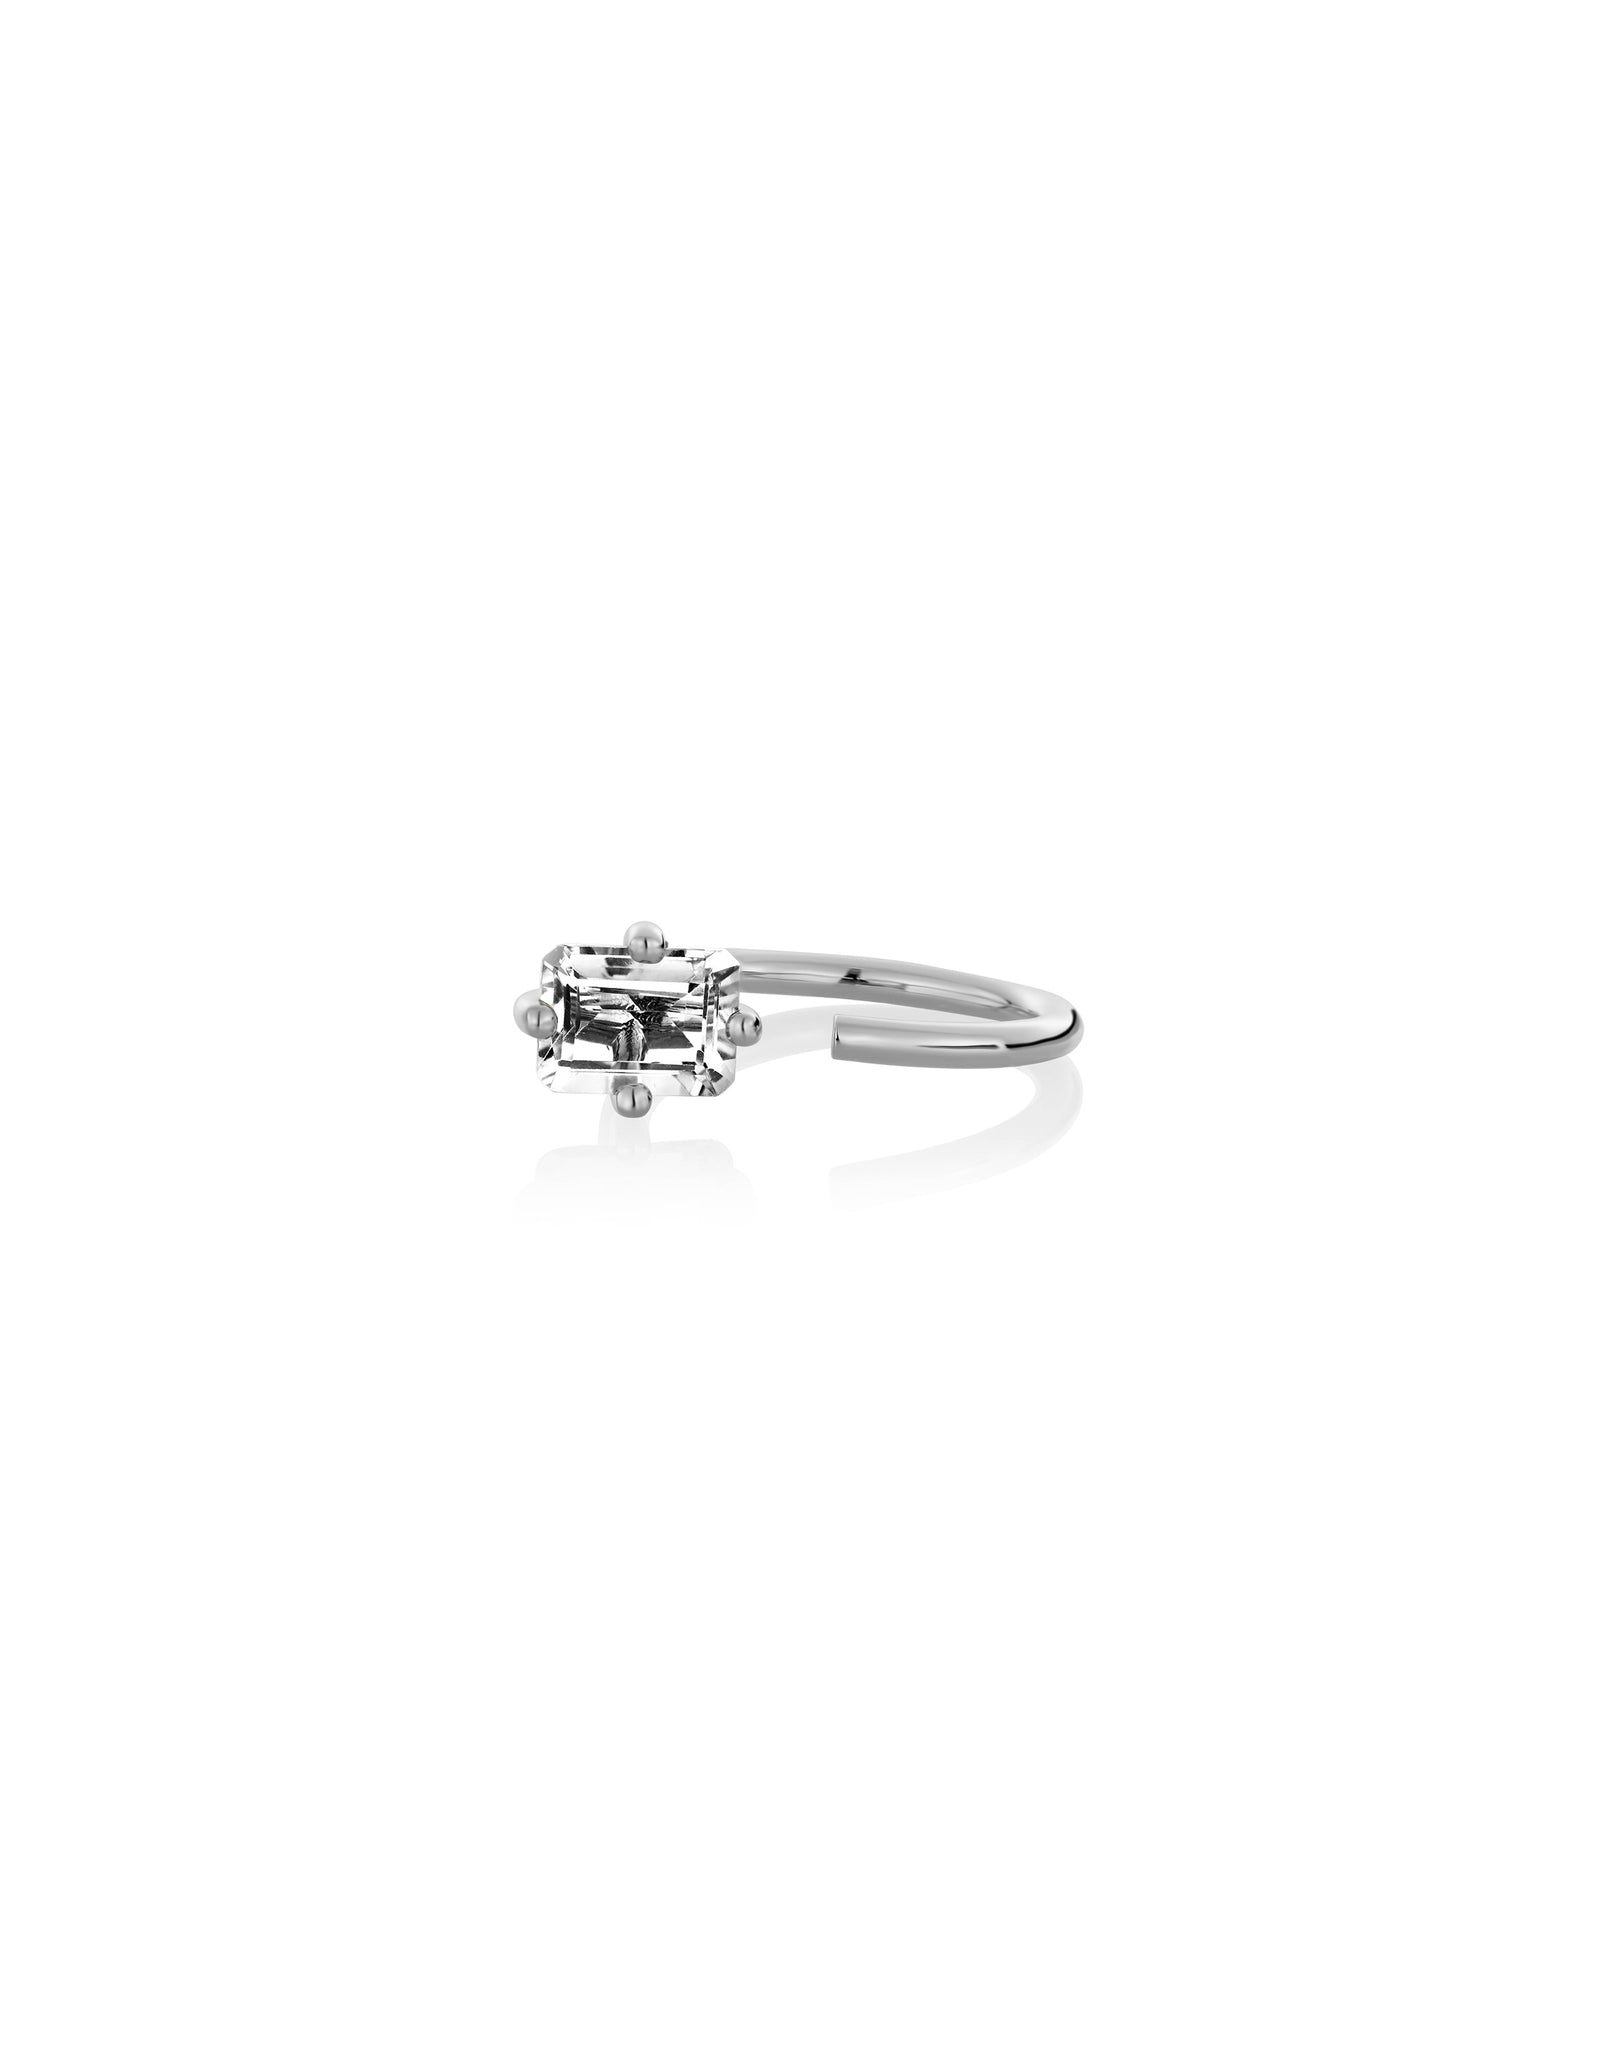 PERSONALIZED OCTOGONE RING IN WHITE GOLD